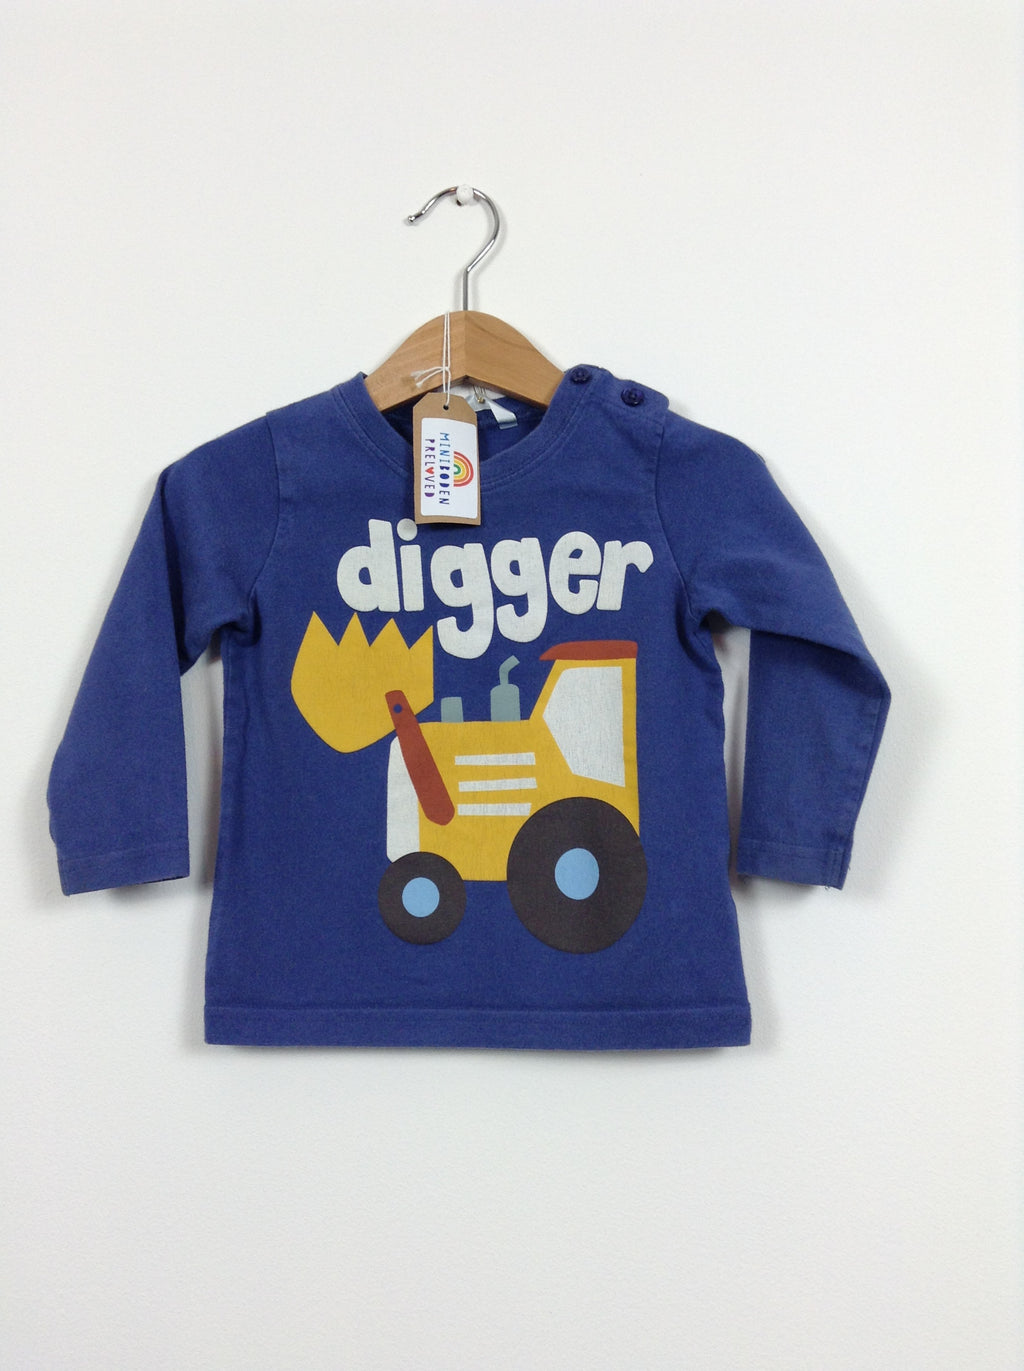 Navy Blue & Yellow Digger Print Top (Age 12-18 Months)